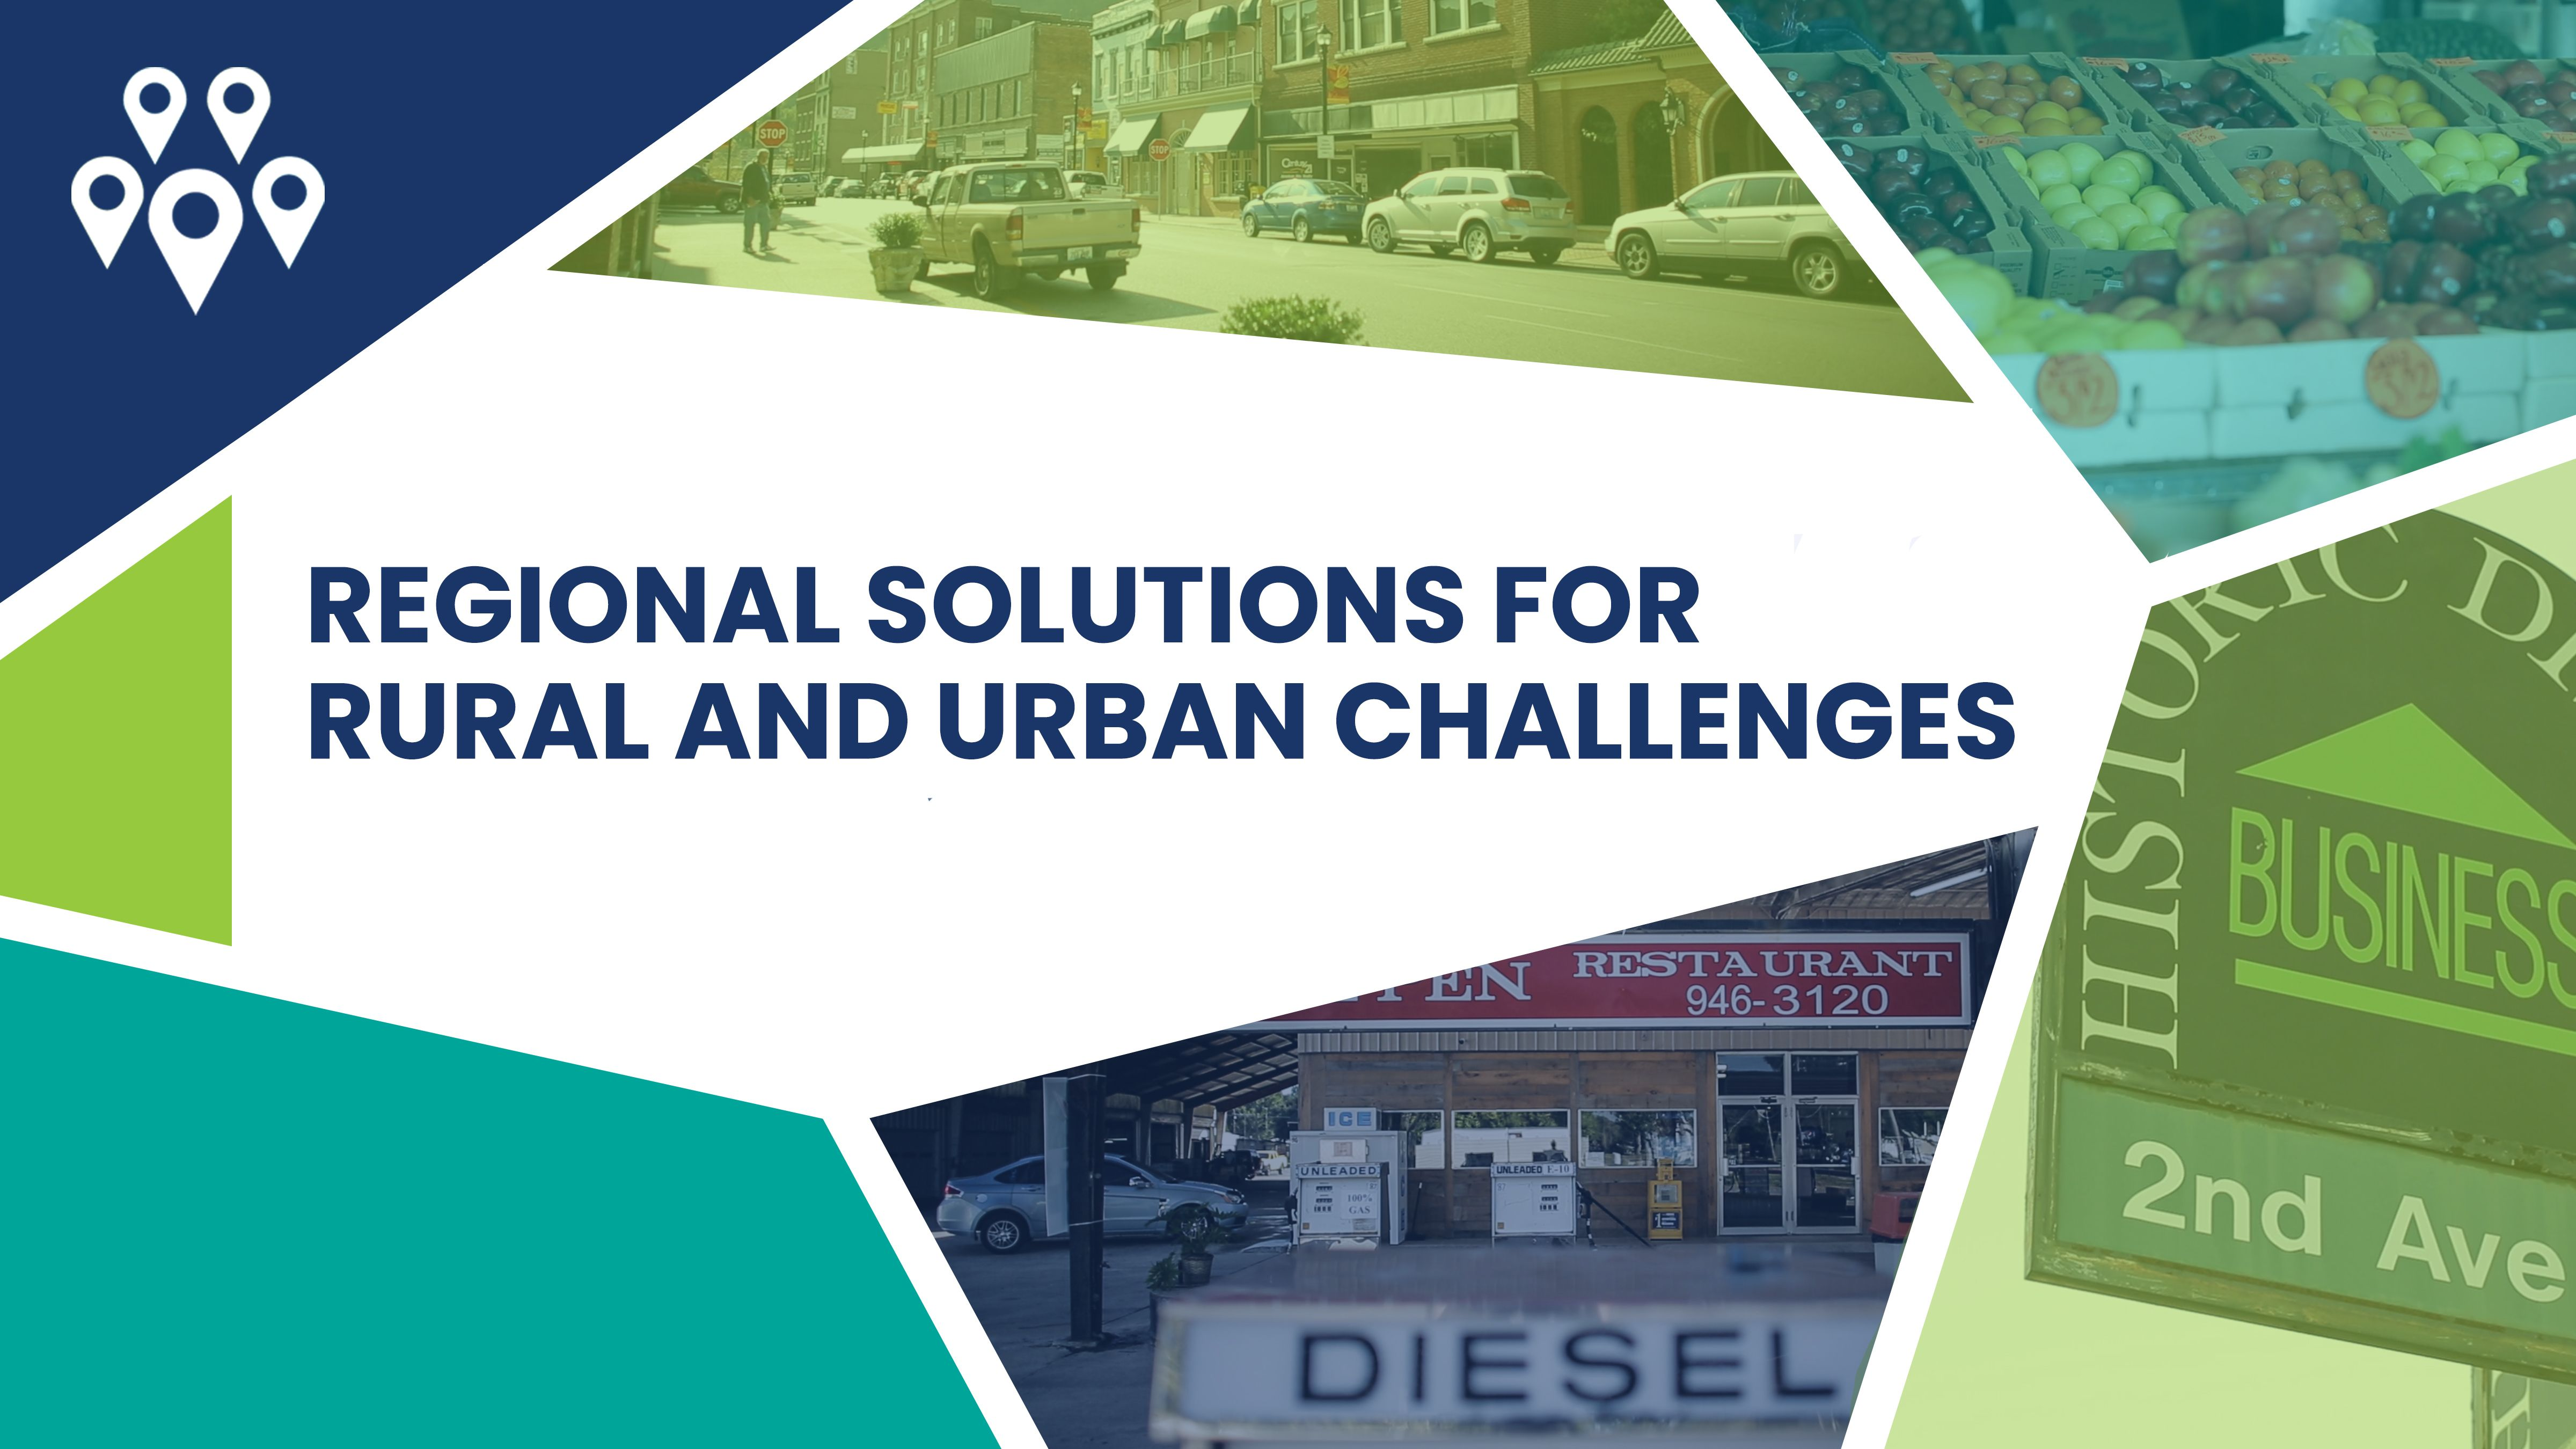 Regional Solutions for Rural and Urban Challenges